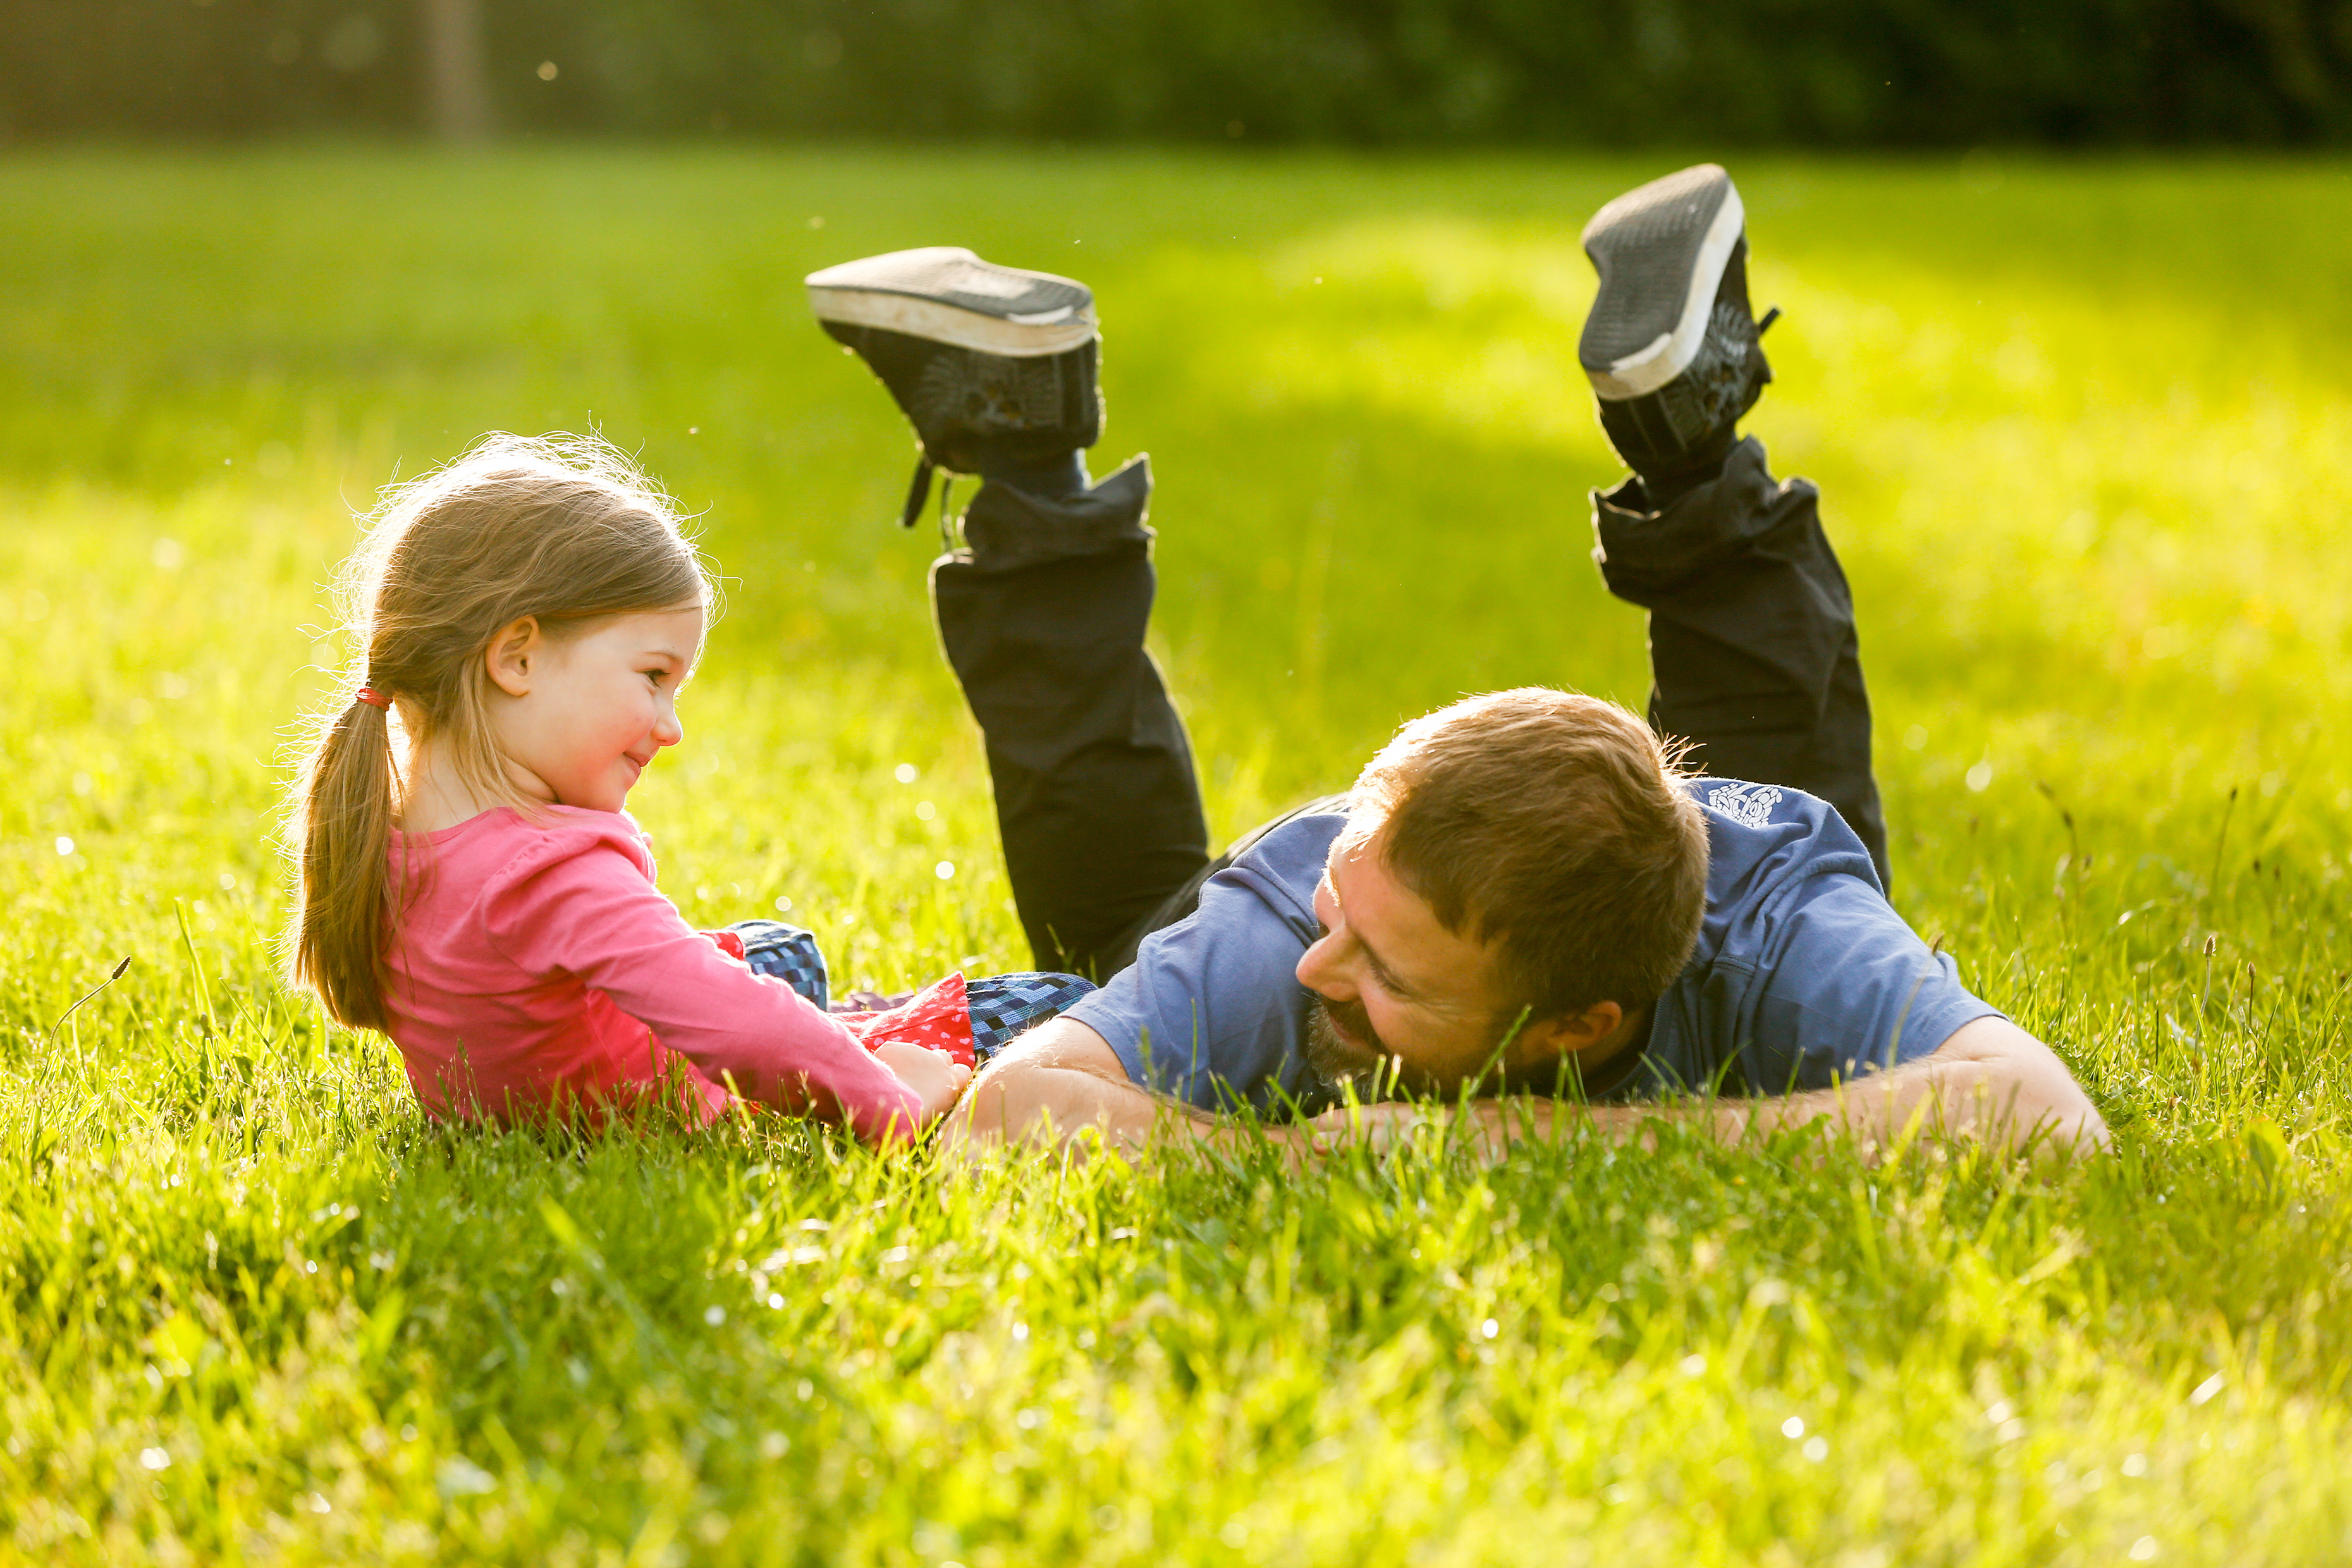 What Your Child Needs to Develop Healthy Attachments